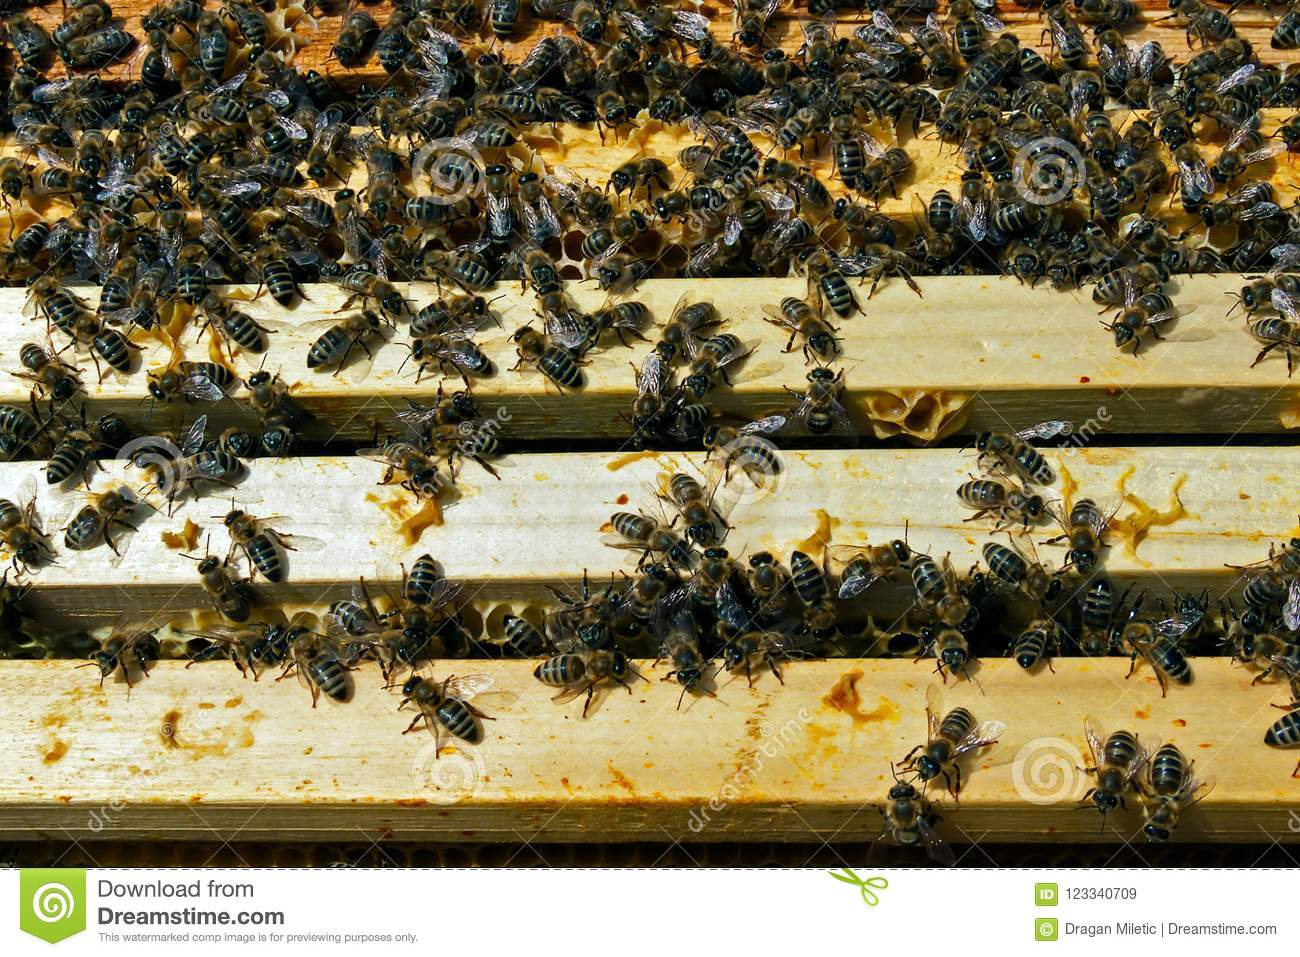 Download Teamwork In The Honey Production Inside Hive Box Stock Image - Image of farm, comb: 123340709